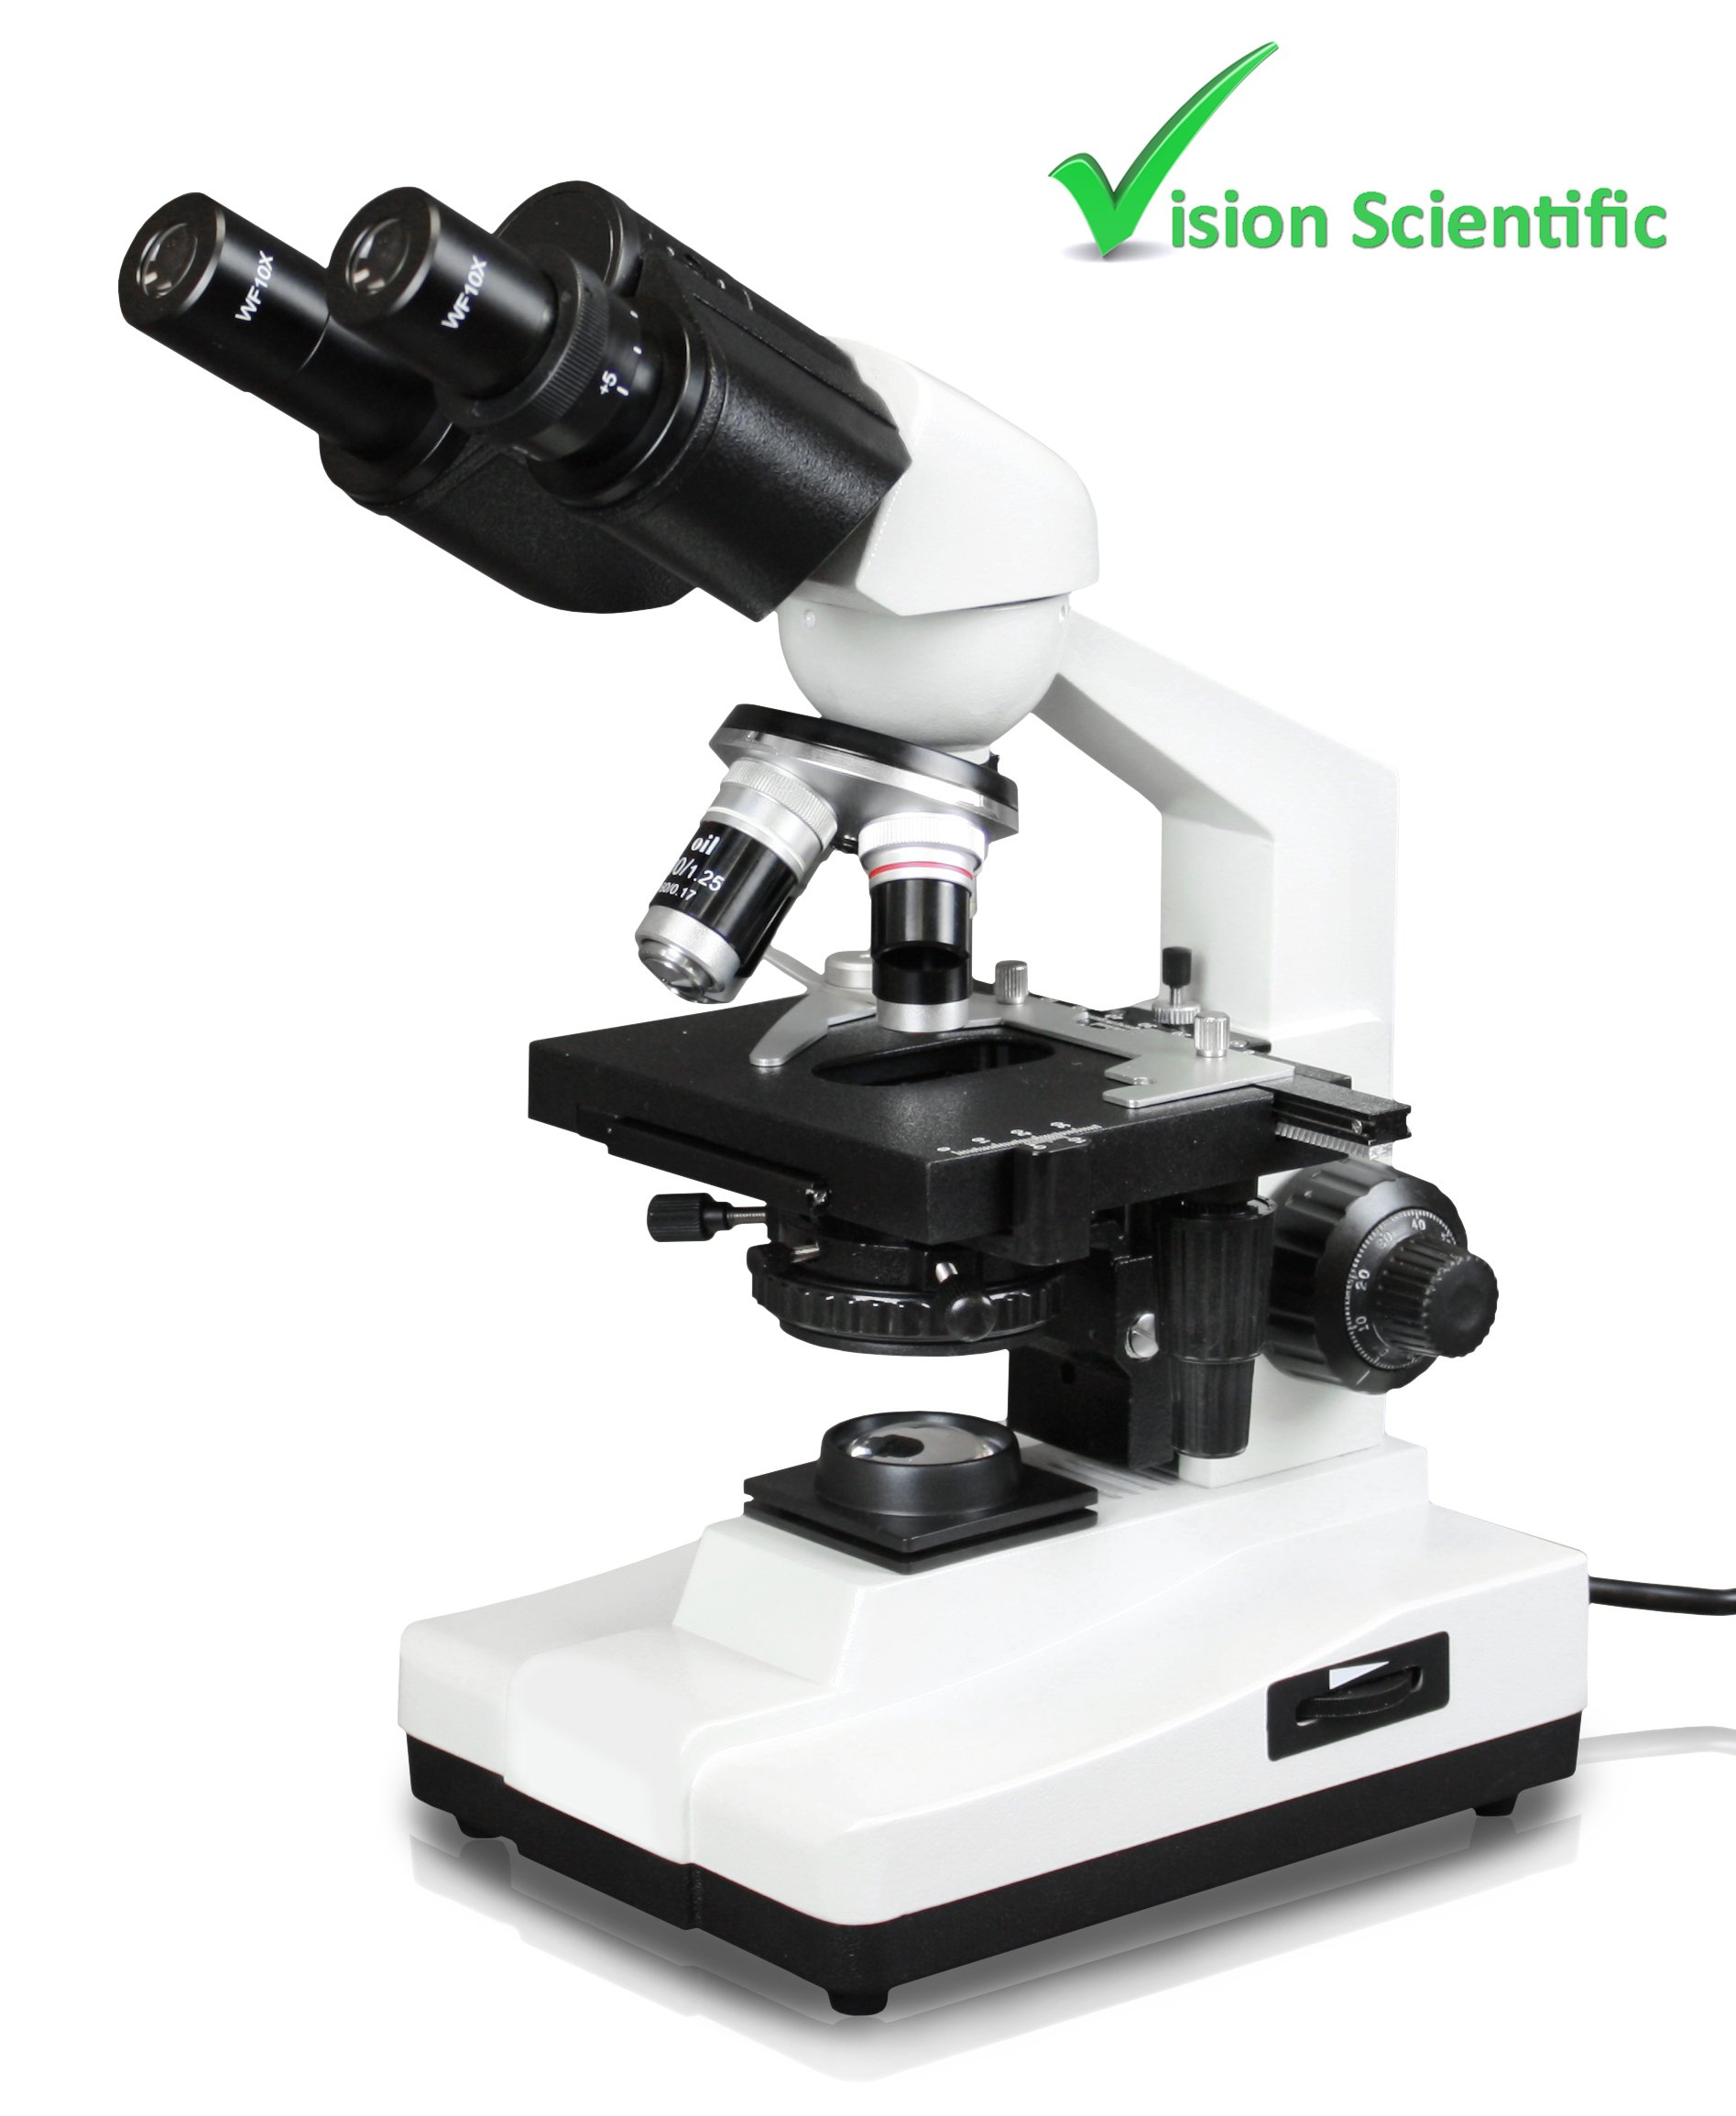 Vision Scientific VME0007B-100-LD Binocular Compound Microscope, 10x WF Eyepieces, 40x-1000x Magnification, LED Illumination, Coaxial Coarse & Fine Focus, 1.25 N.A. Abbe Condenser by Vision Scientific